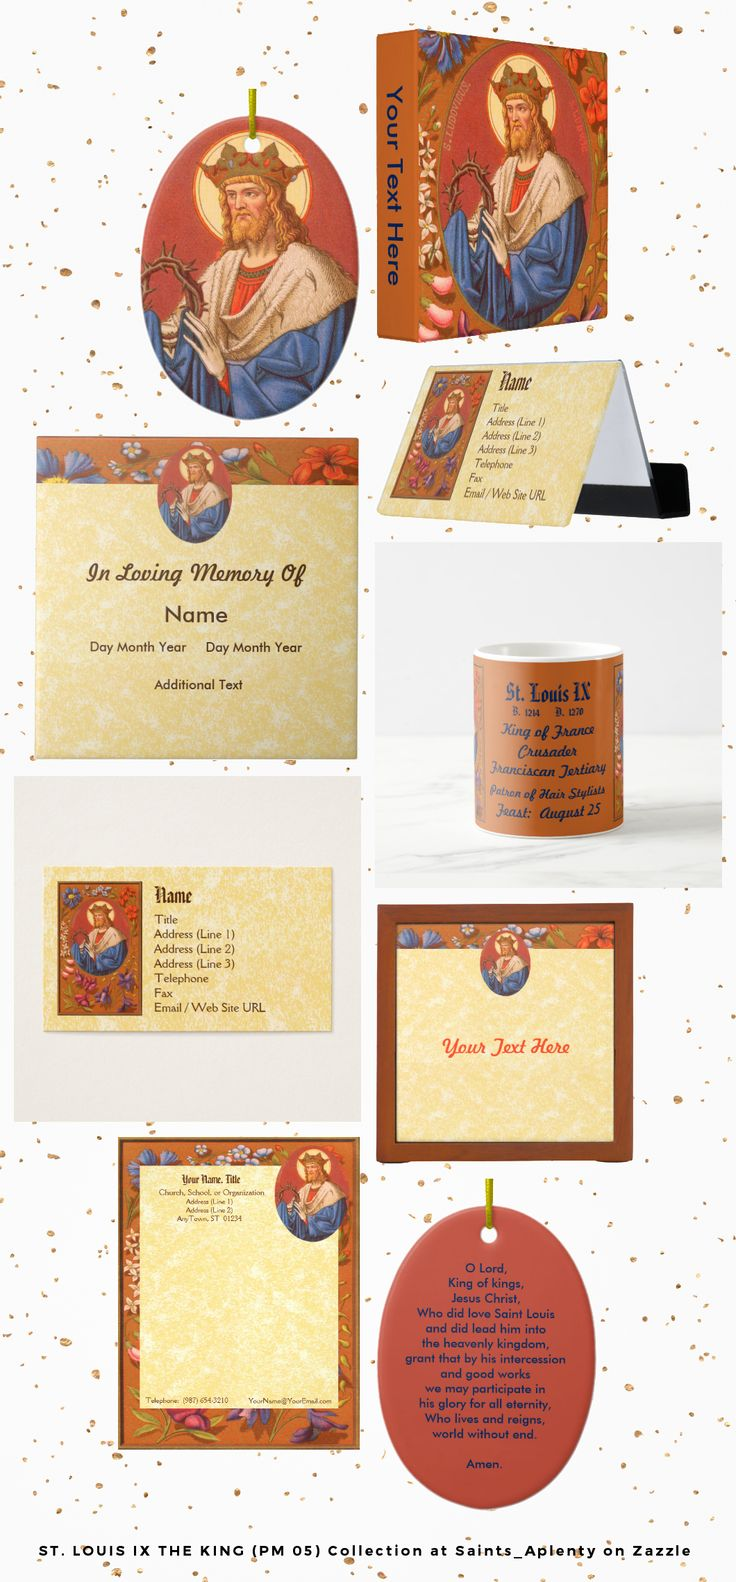 The St. Louis IX the King  (PM 05) Collection at Saints_Aplenty on Zazzle includes almost a hundred products featuring the likeness of the only ruler of France to achieve saintdom!   Many of the items can be personalized or customized to meet your specific gift-giving needs by using Zazzle's user-friendly interface.  For a more complete look at our product line, see our slideshow presentation or visit our store today!